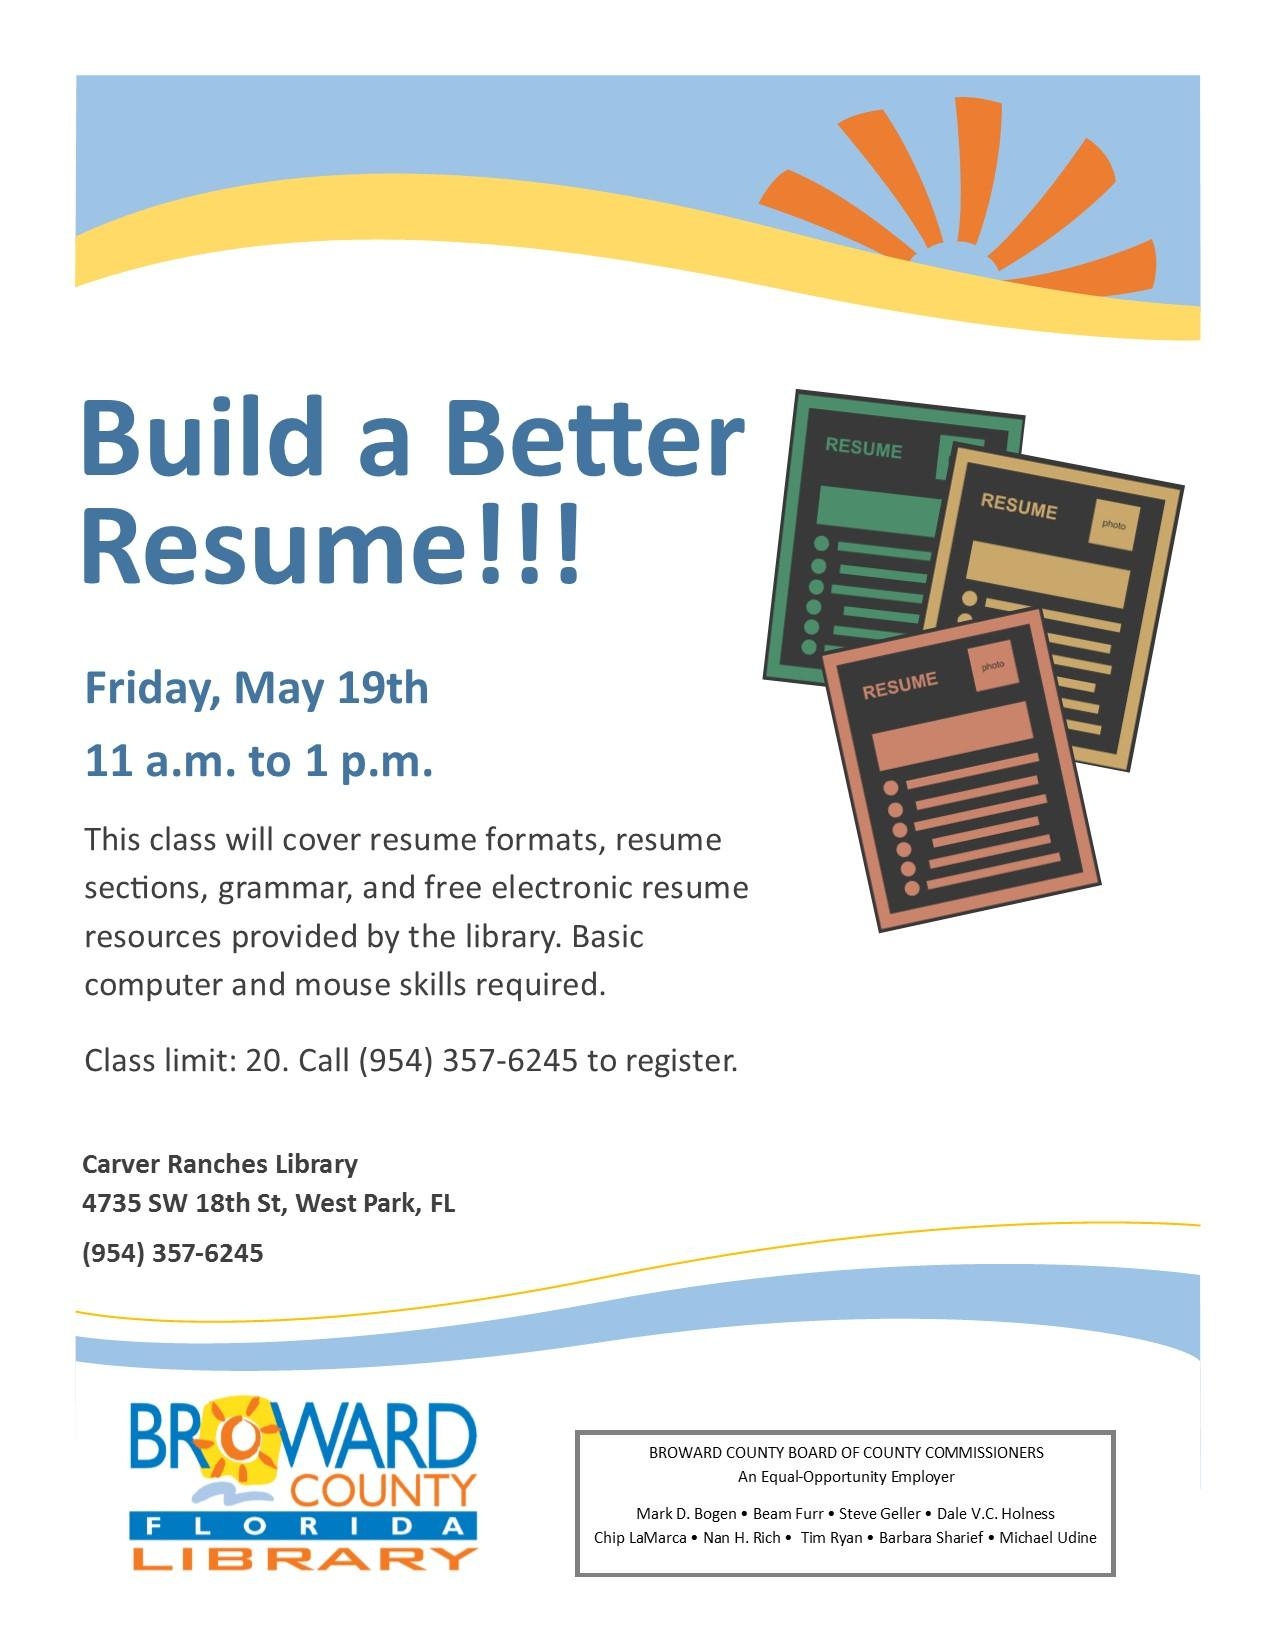 Build A Better Resume Carver Ranches Library West Park